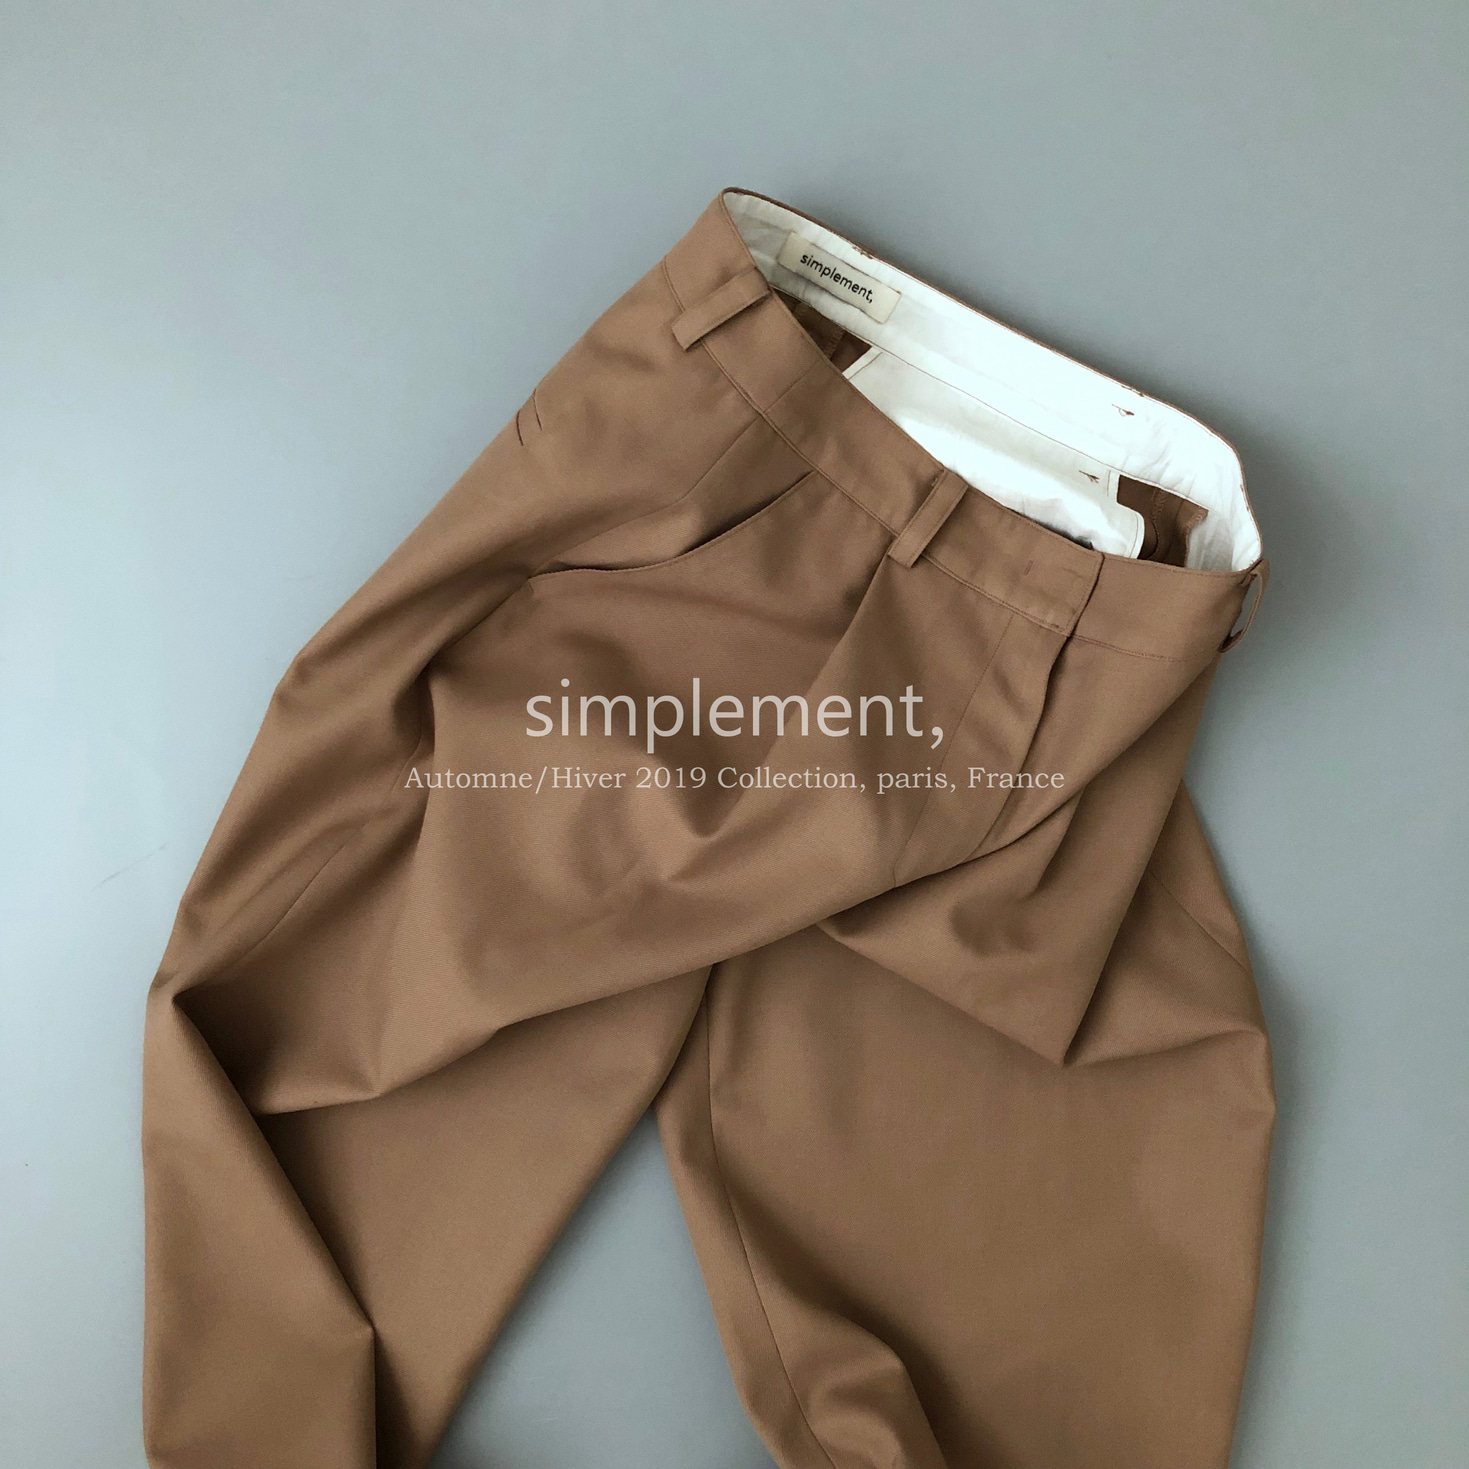 109 Nauman Pantalon in Beige